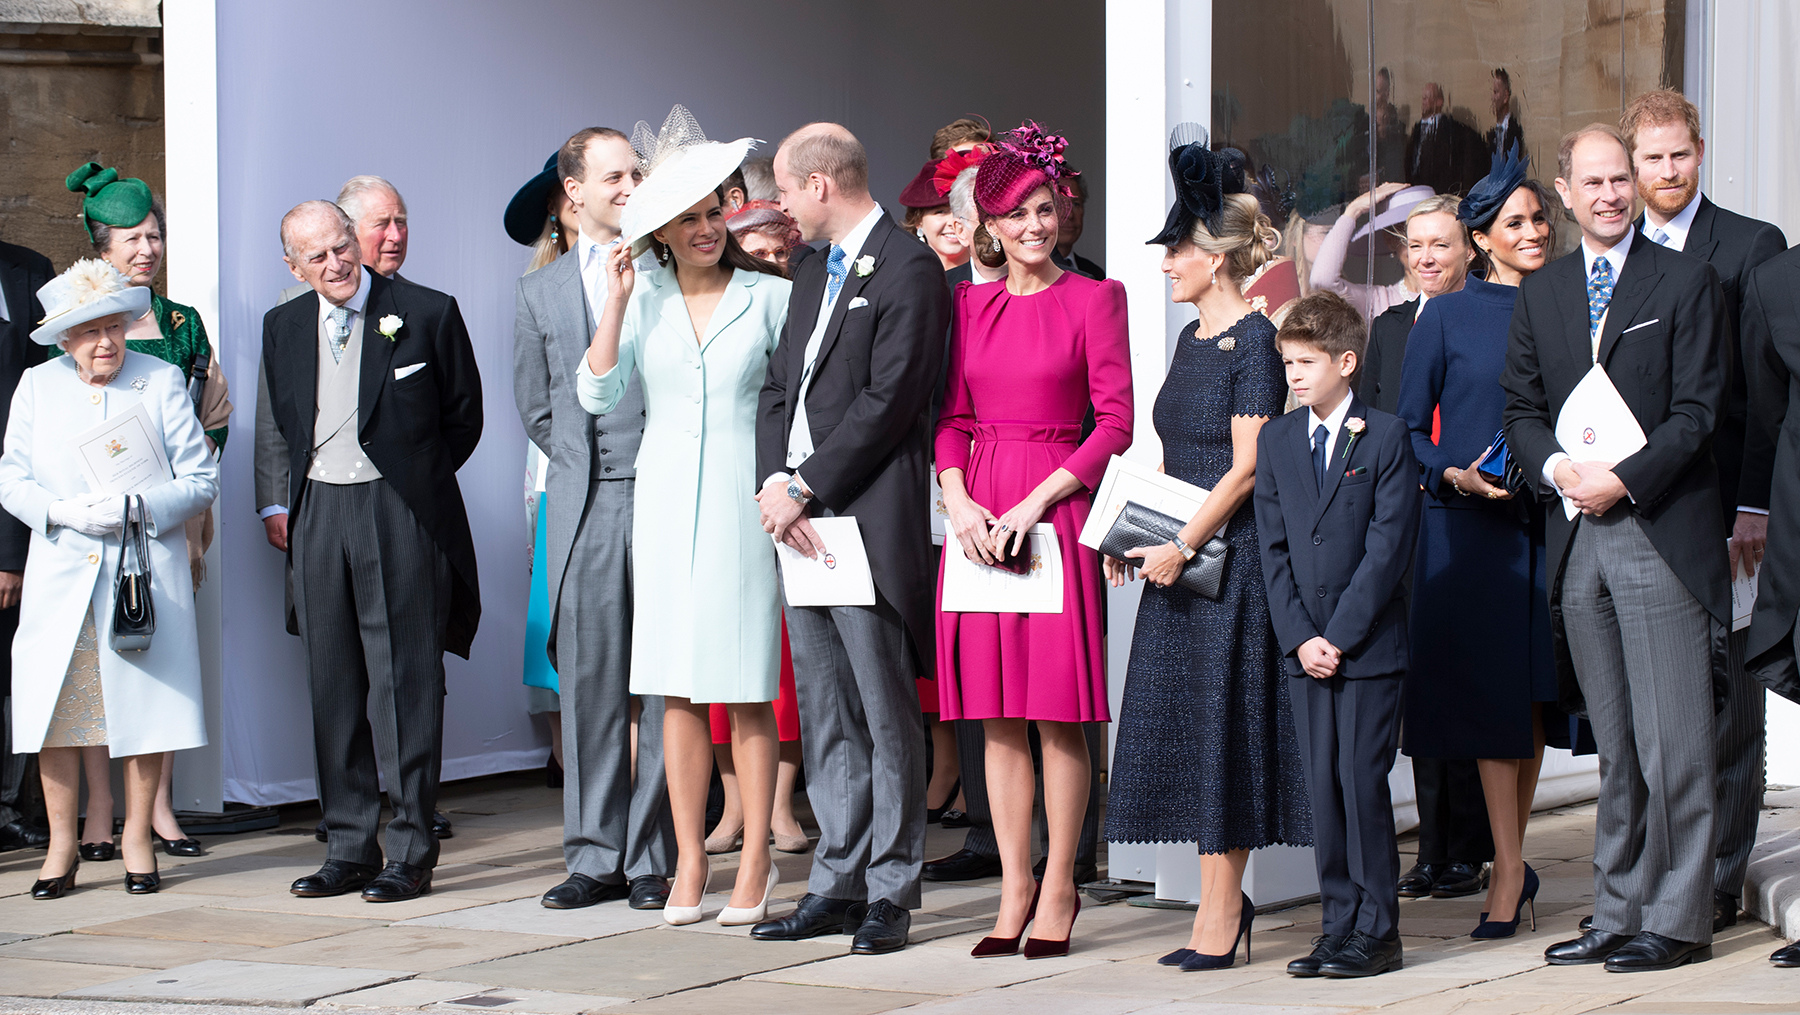 Kate Middleton attends the wedding of Princess Eugenie